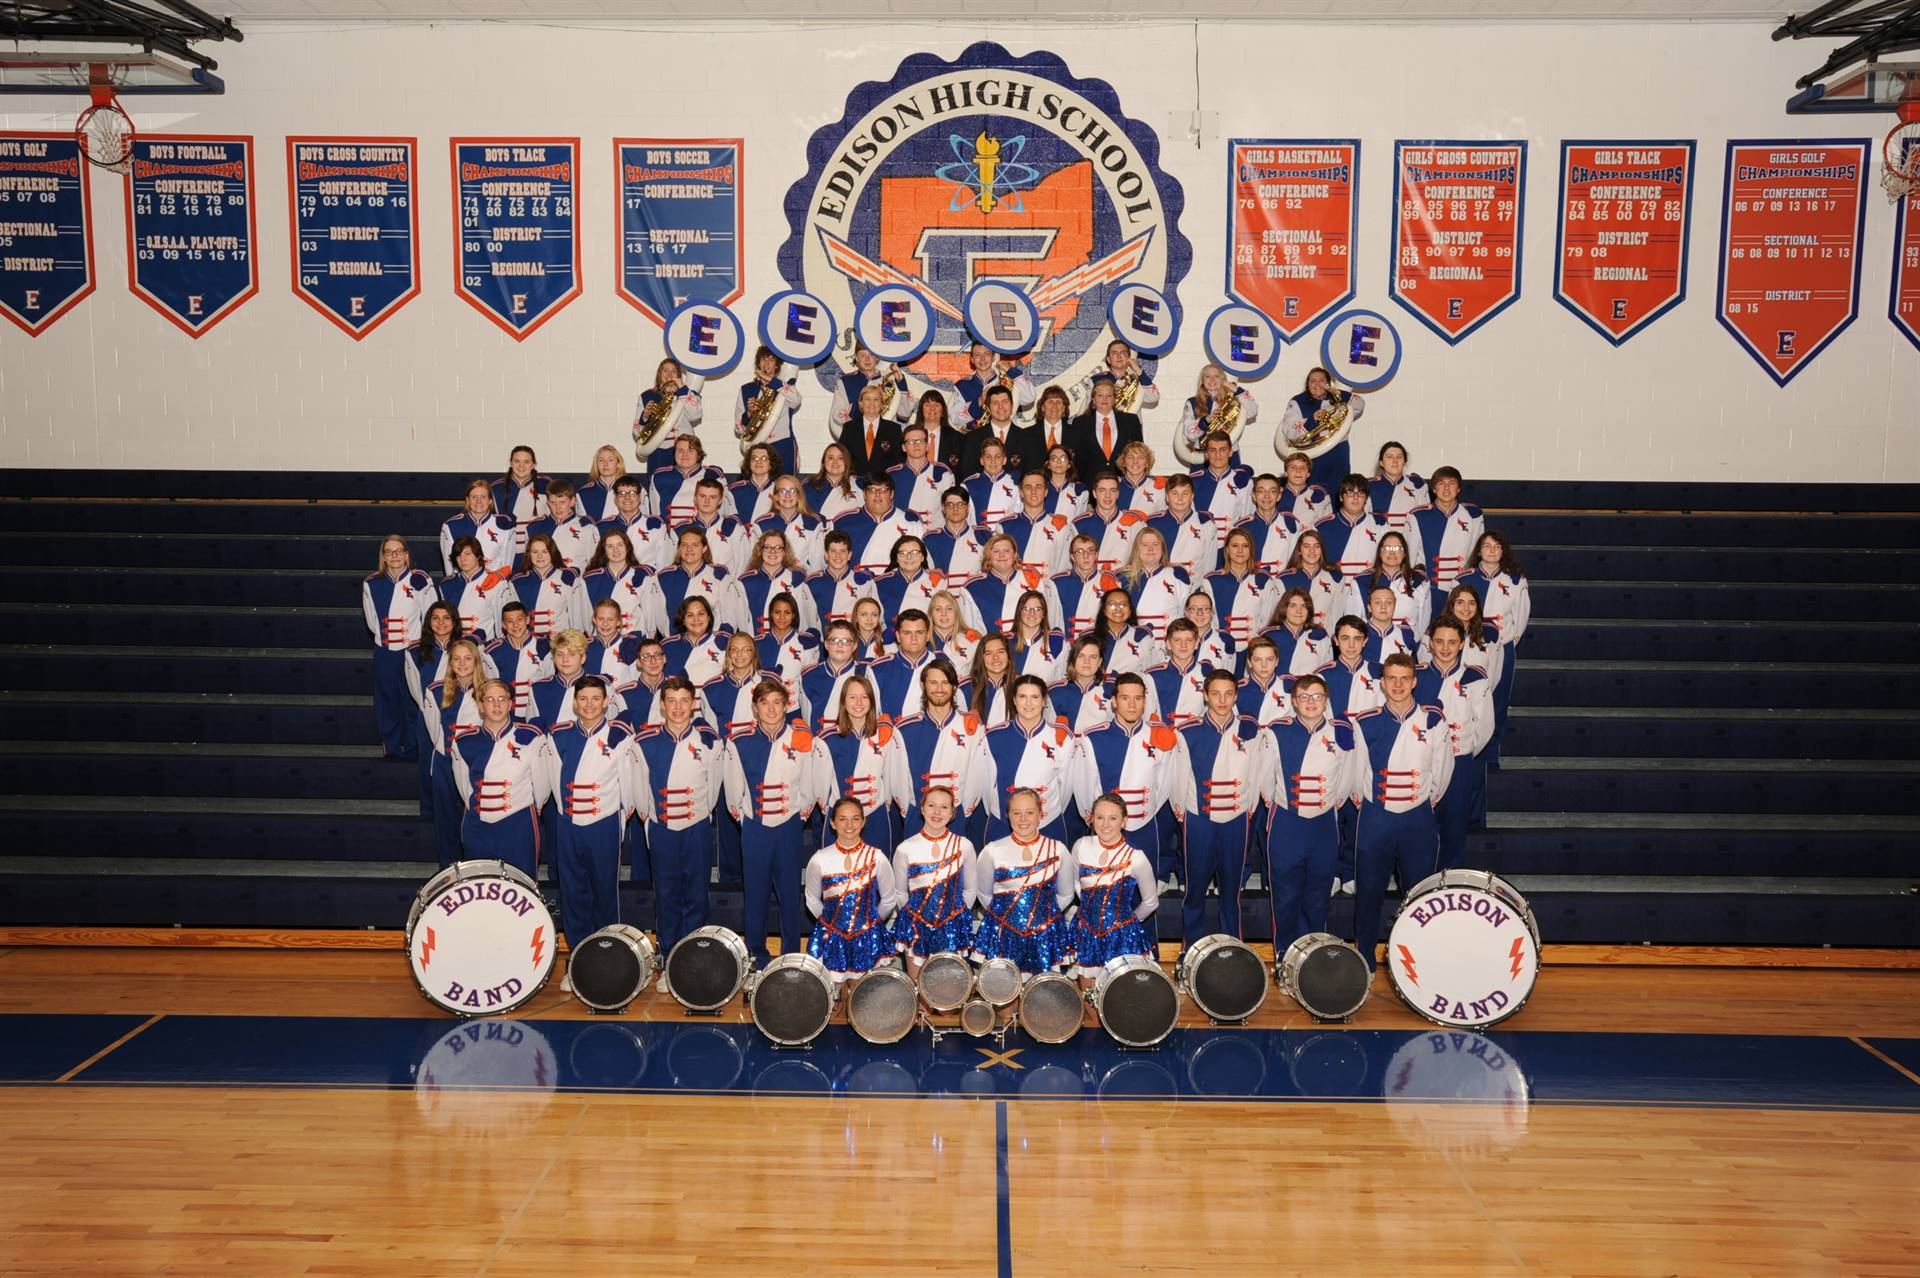 2018 Charger Marching Band